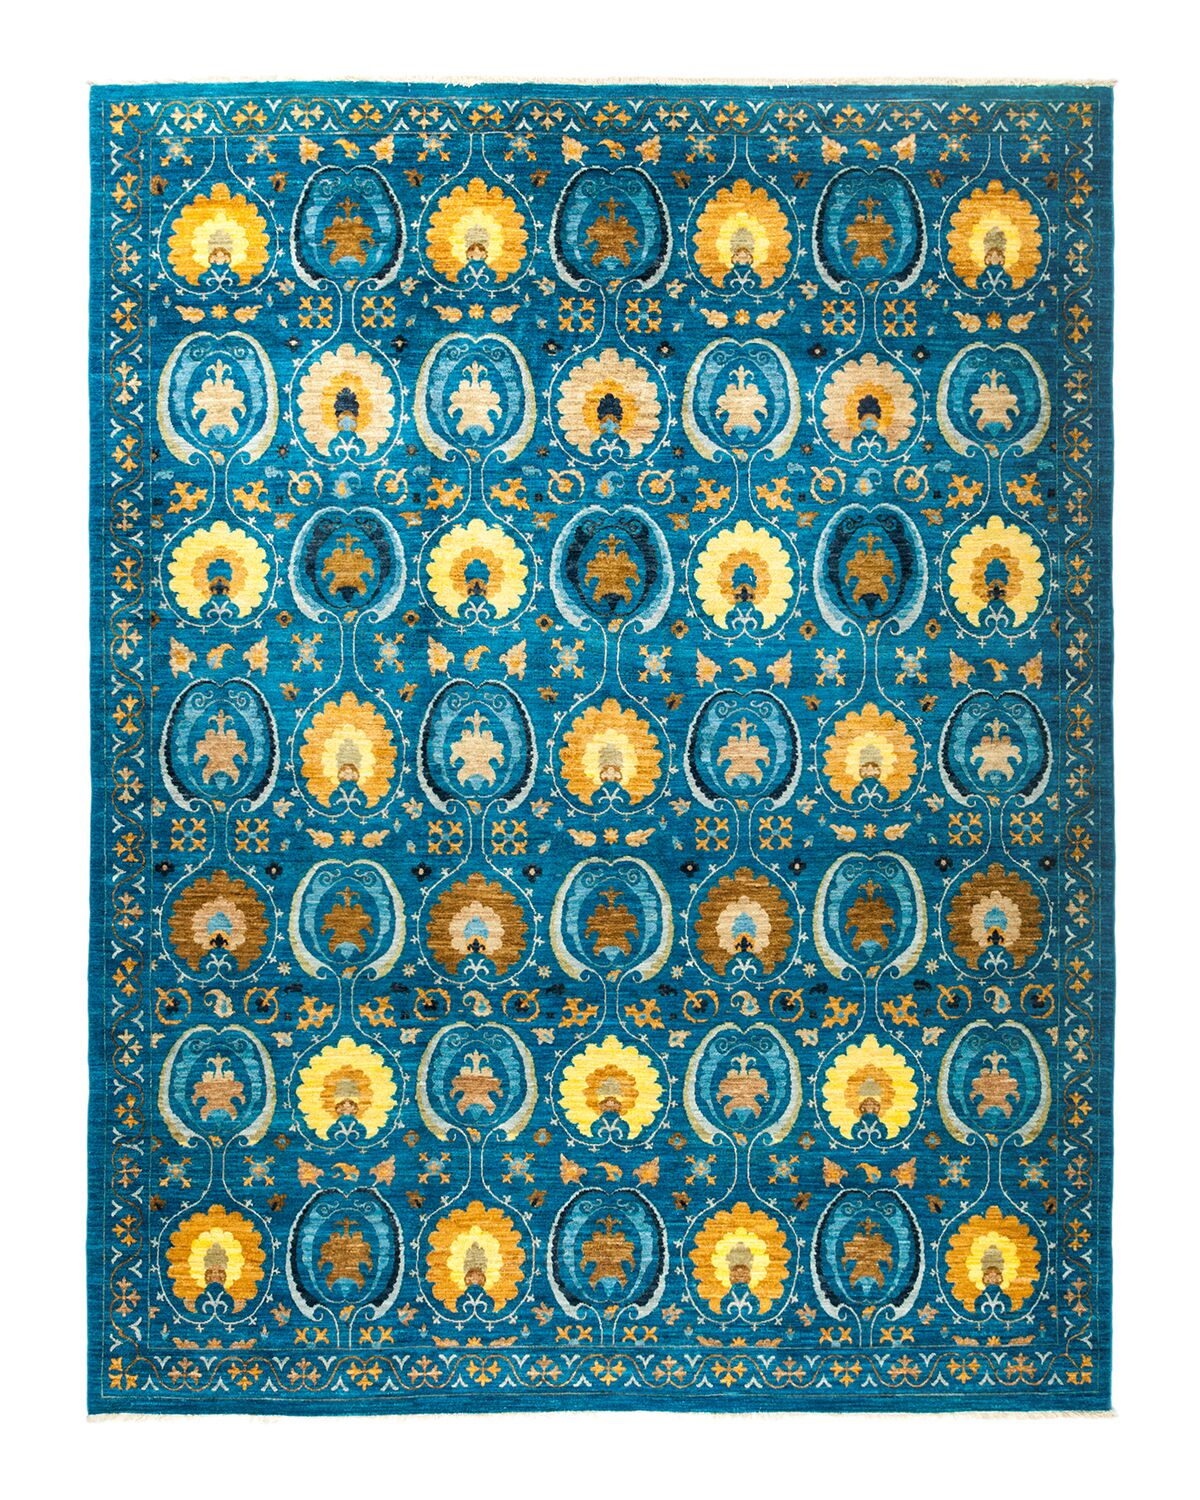 One-of-a-Kind Suzani Hand-Knotted Blue Area Rug Rug Size: Rectangle 9'1